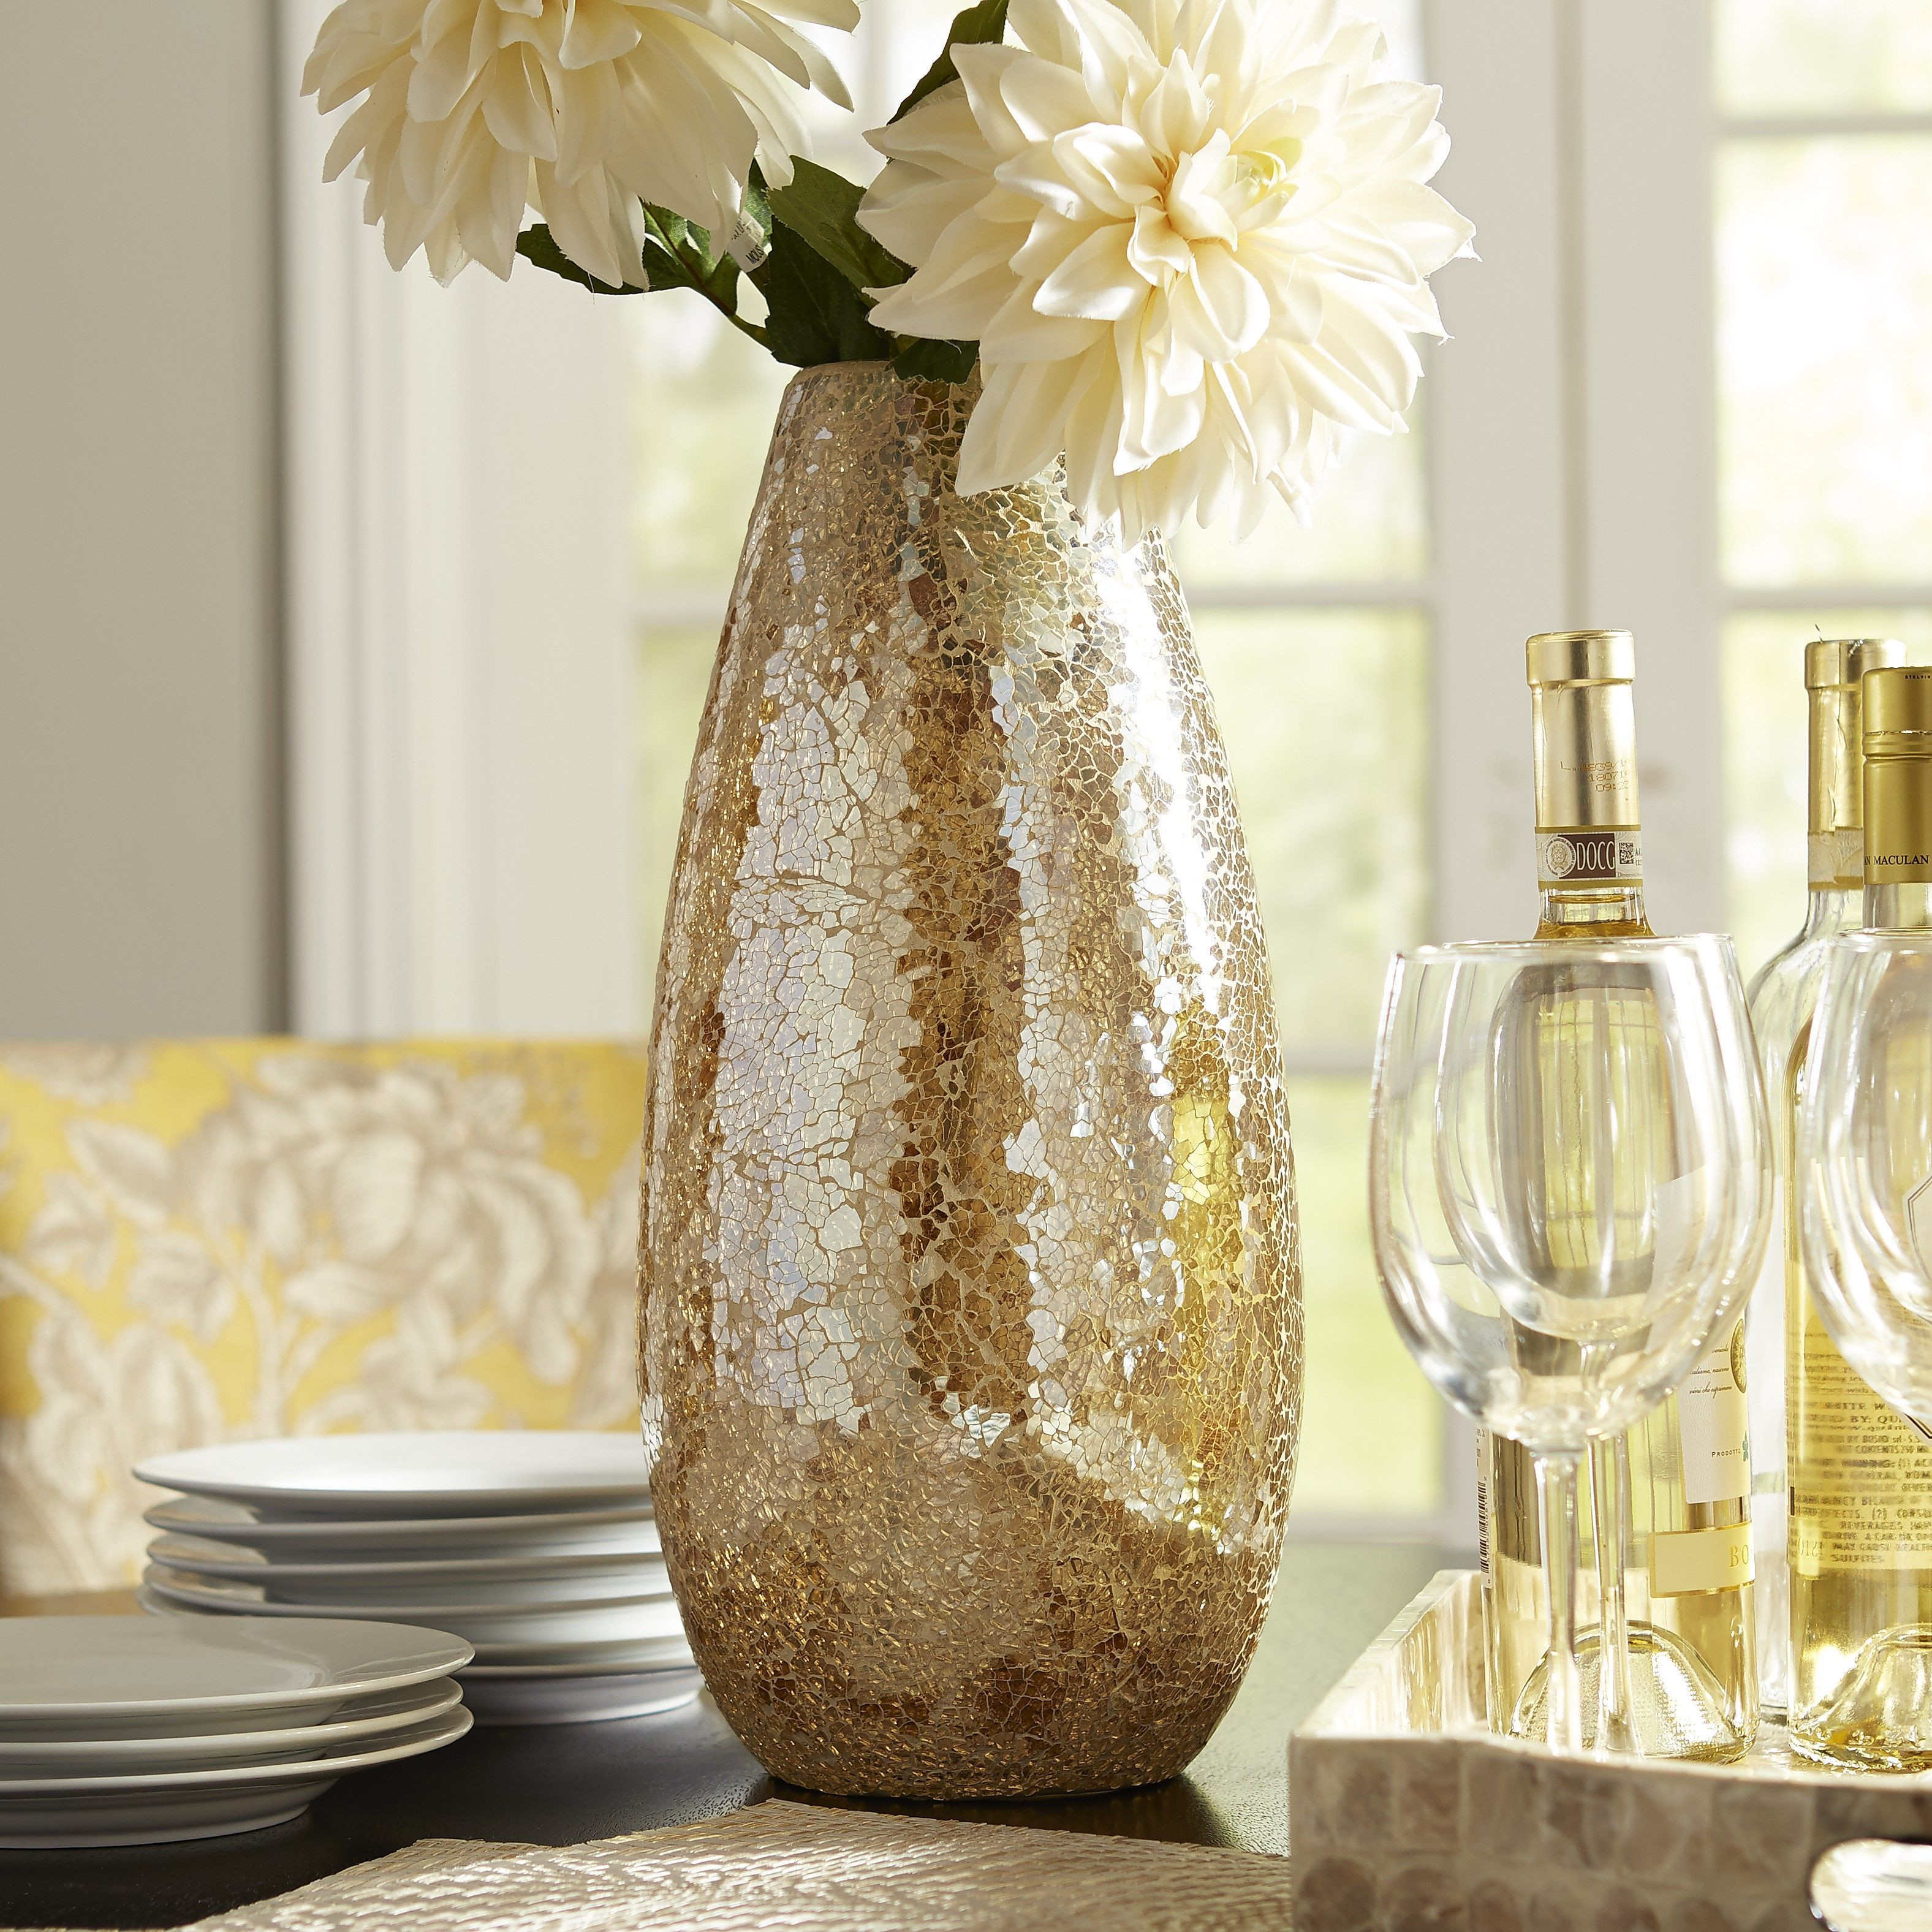 West Elm Faceted Glass Vases Of Gold Luster Mosaic Glass Vase Products Pinterest Glass Vase Inside Gold Luster Mosaic Glass Vase